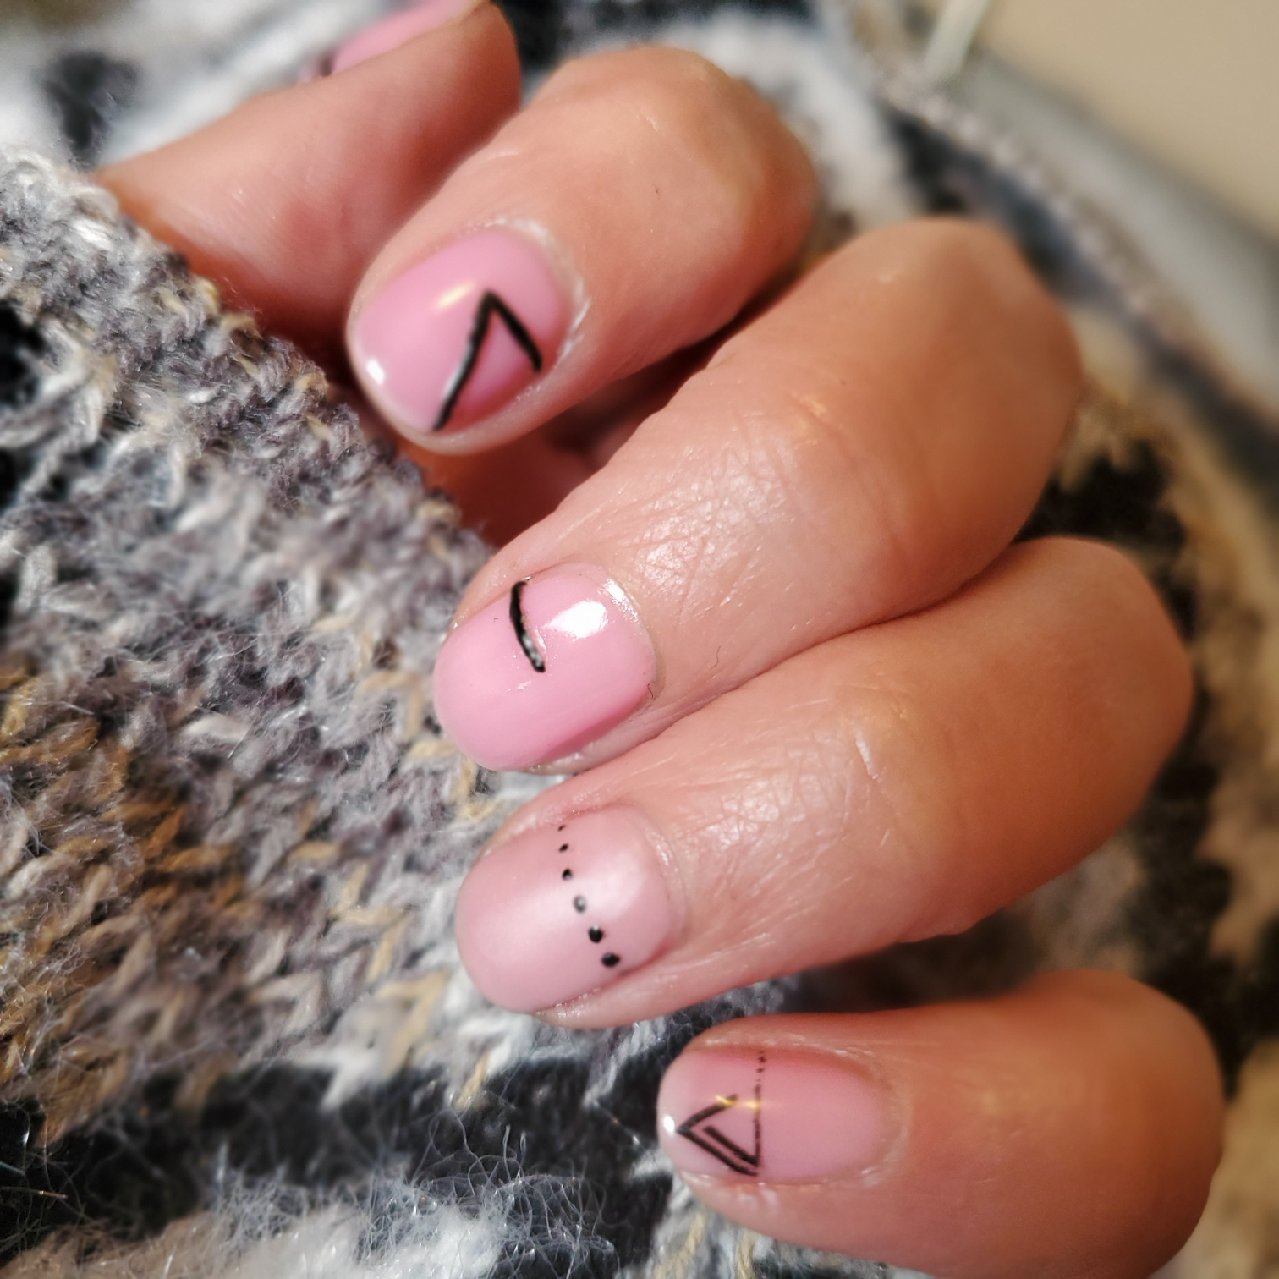 Nail Art, Pastel, Pink, Pink and Black, Hand drawn, Striping, Graphic Nail Art, Graphic Nails, Nail Art, Perfect Manicure, Dazzle Dry